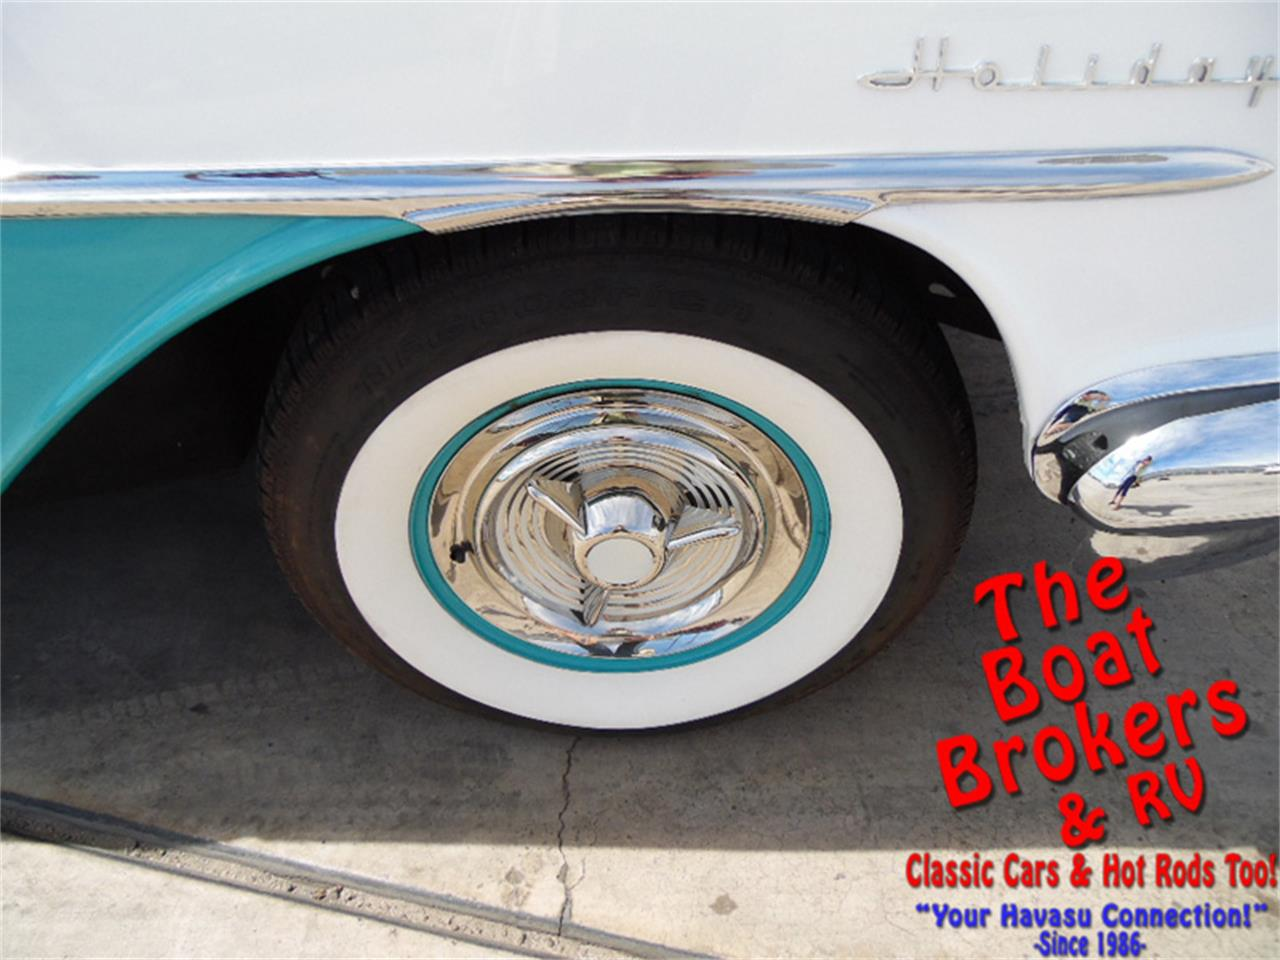 Large Picture of 1955 Oldsmobile Holiday Rocket 88 - $31,000.00 - N2PY